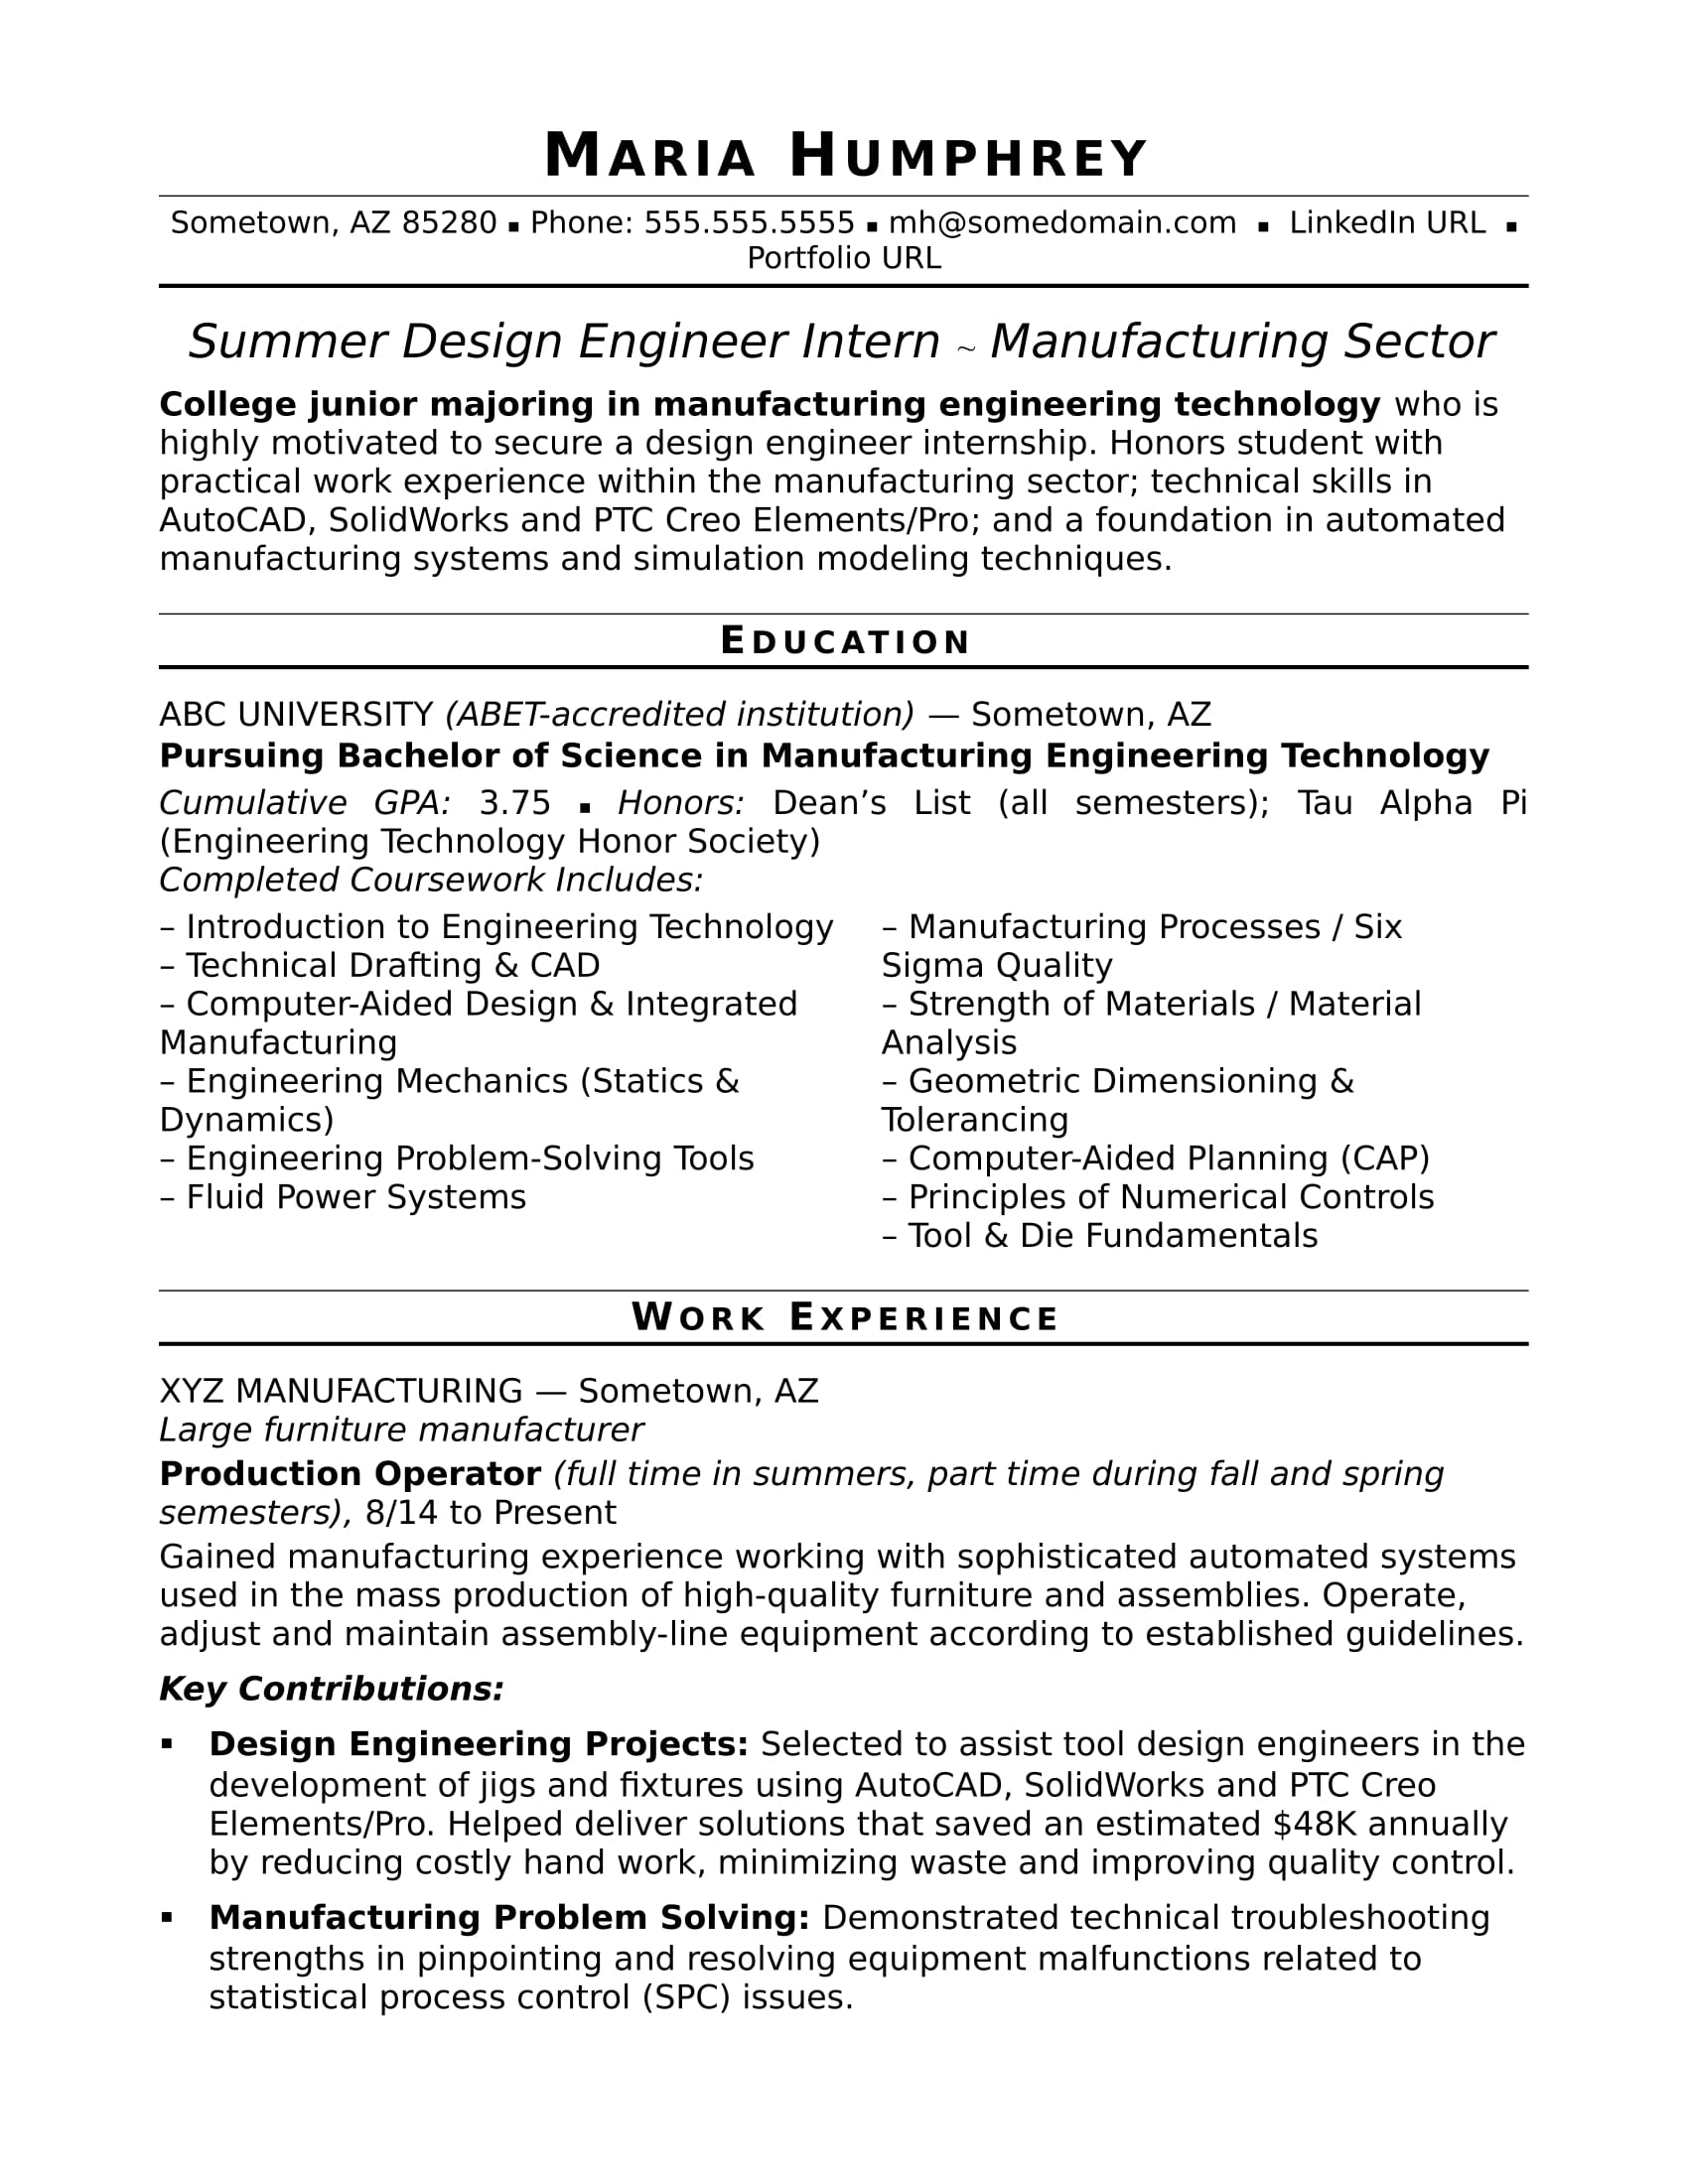 sample resume for an entry level design engineer - Design Engineer Resume Example